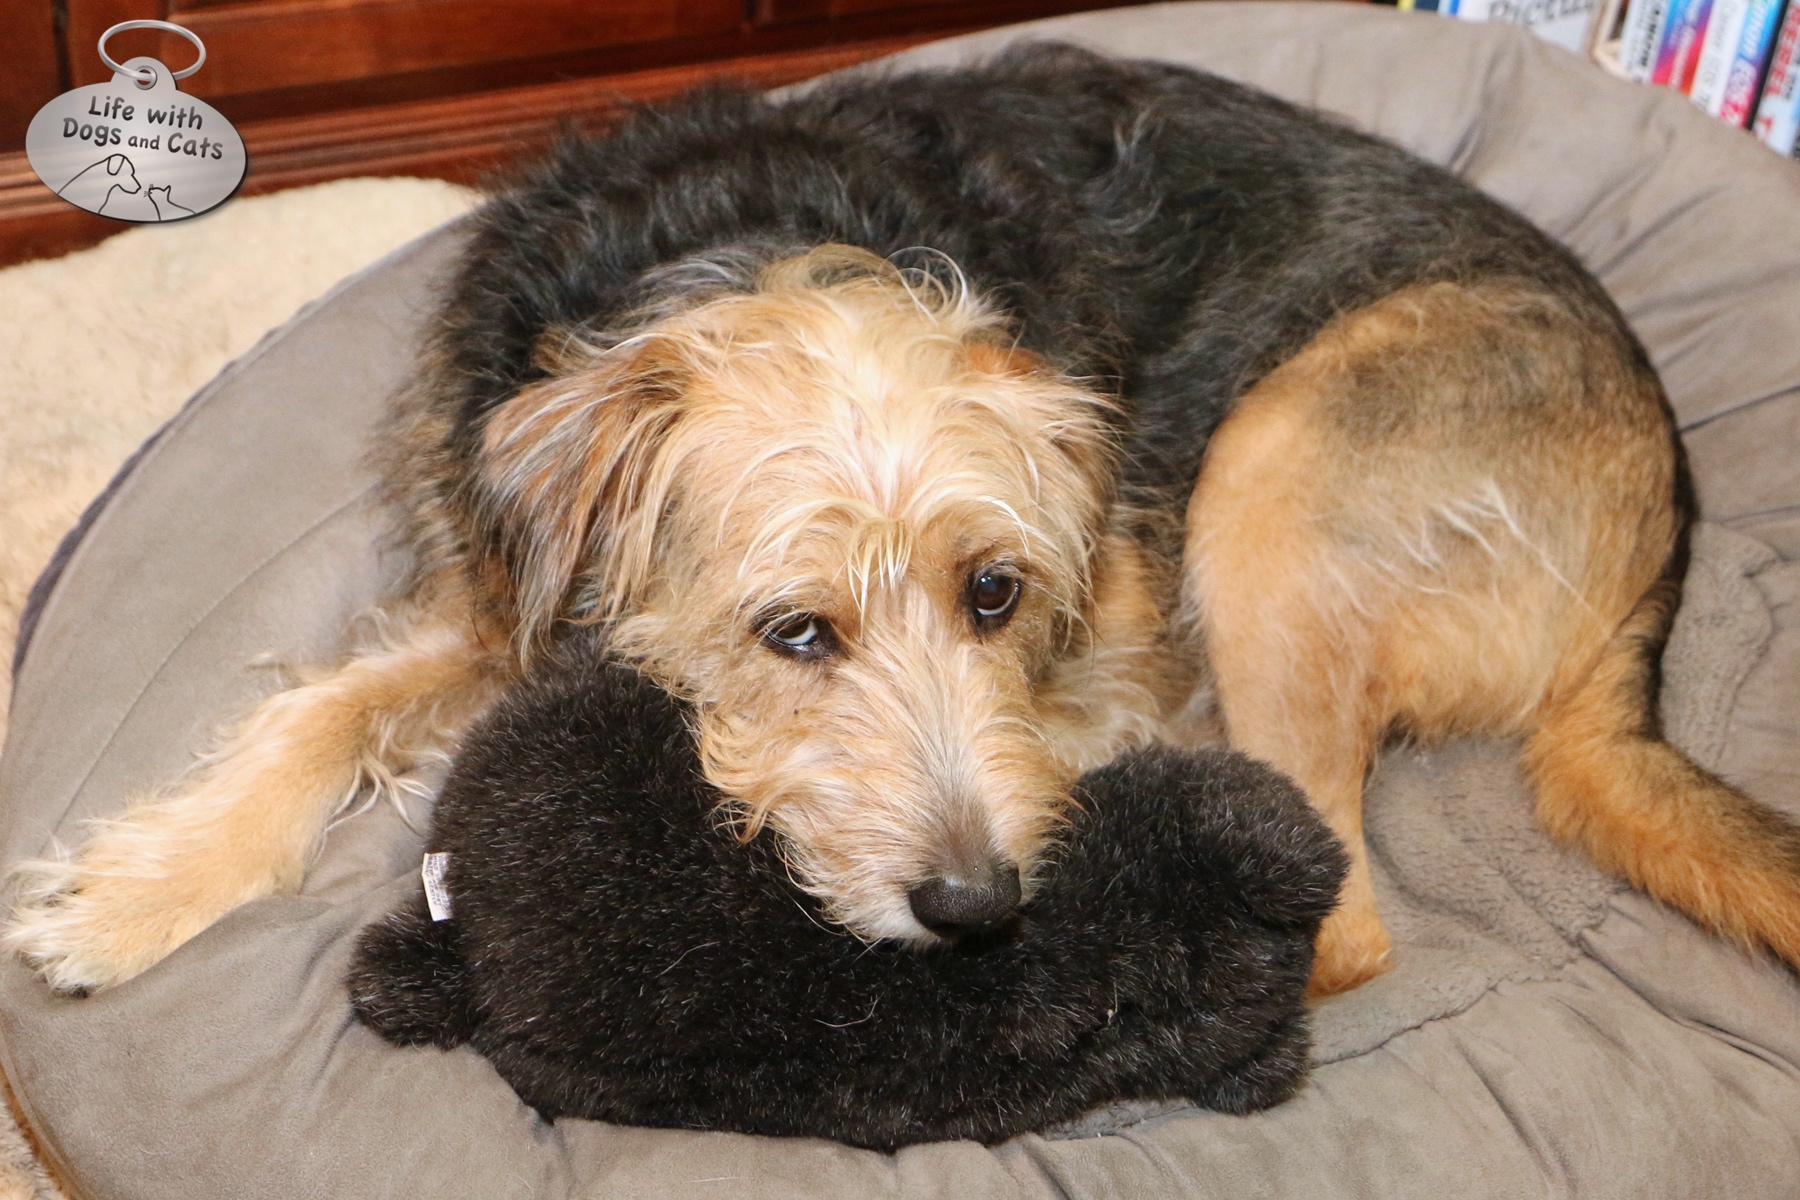 A huggable, adorable Tucker in my office, along with the current stuffed animal of choice.